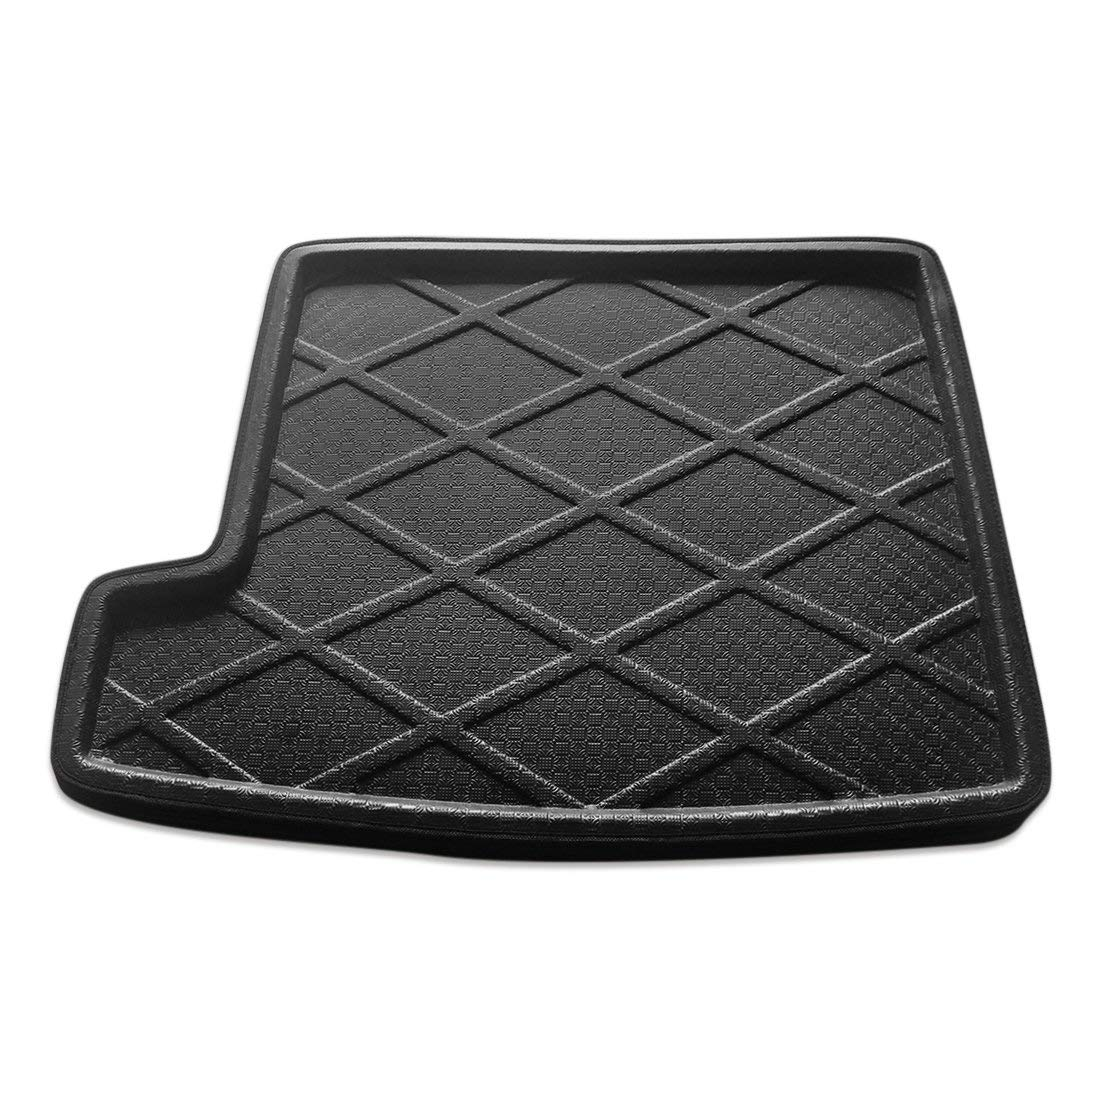 uxcell Black Rear Trunk Tray Boot Liner Cargo Floor Mat Cover for BMW X1 2010-2015